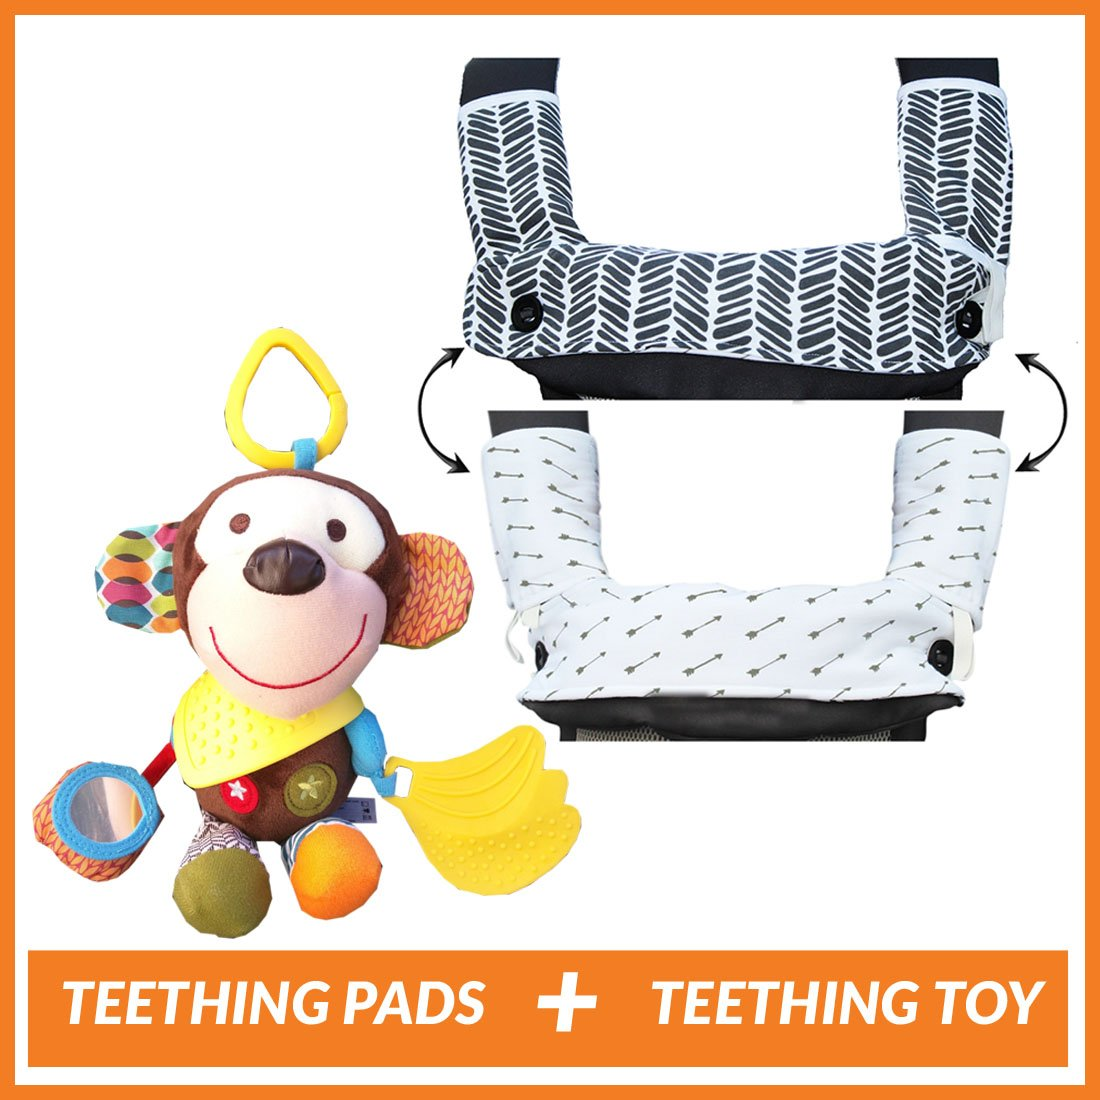 Teething Drooling Baby Set – Includes Chew Suck Pads for Ergobaby 360 Four Position Baby Carrier & Monkey Plush Activity Teether Toy for Infants and Toddlers -Ideal gift for Baby Shower & Parent Gift